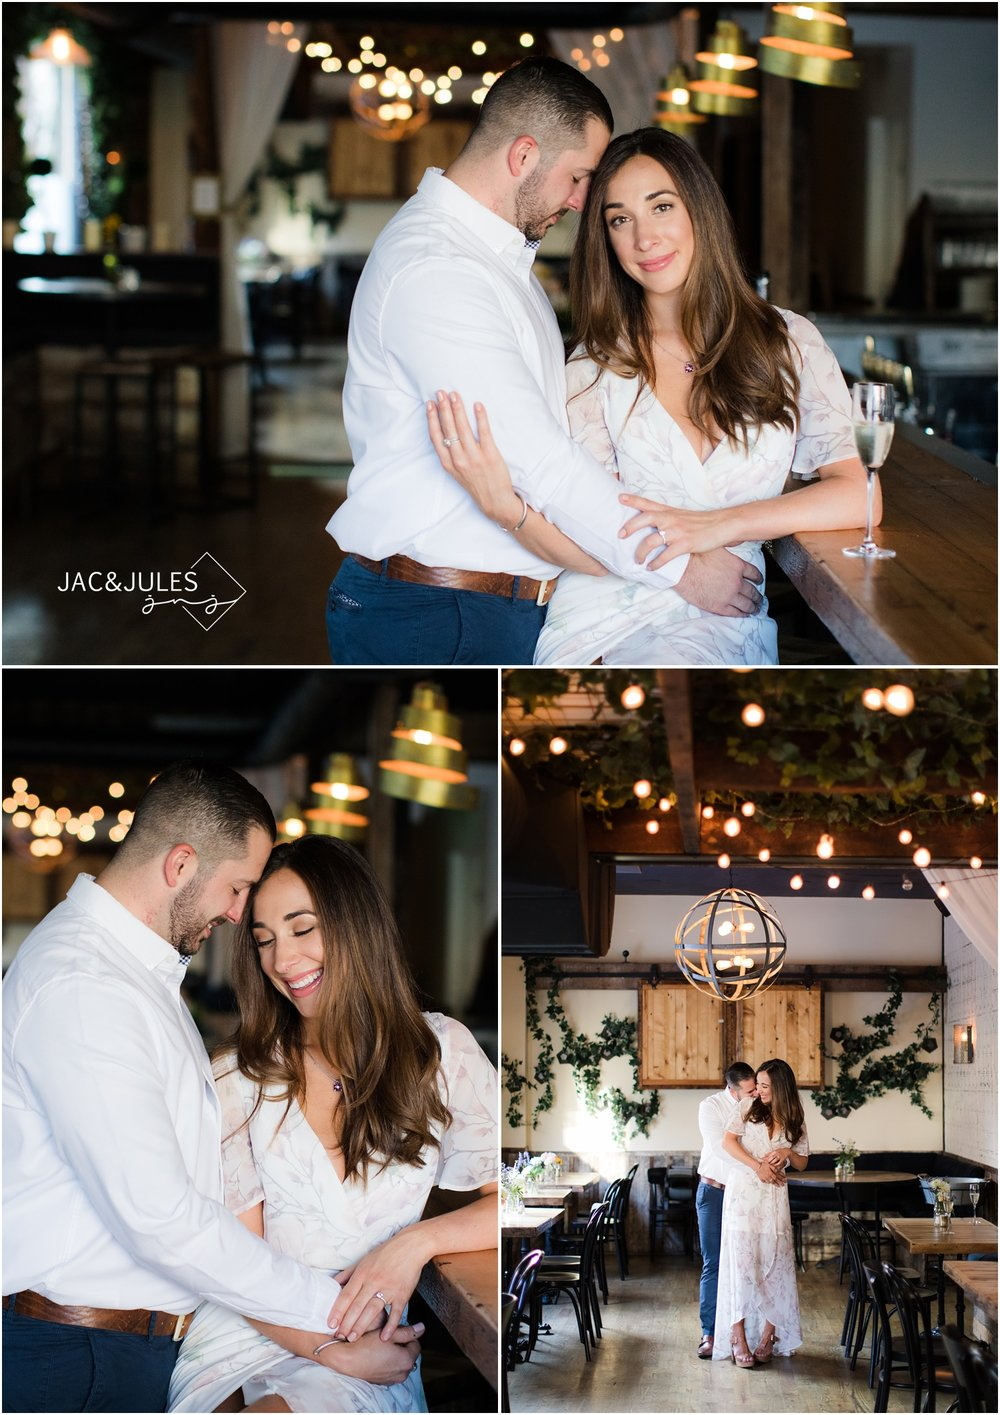 Romantic Engagement photos at Grand Vin in Hoboken, NJ.